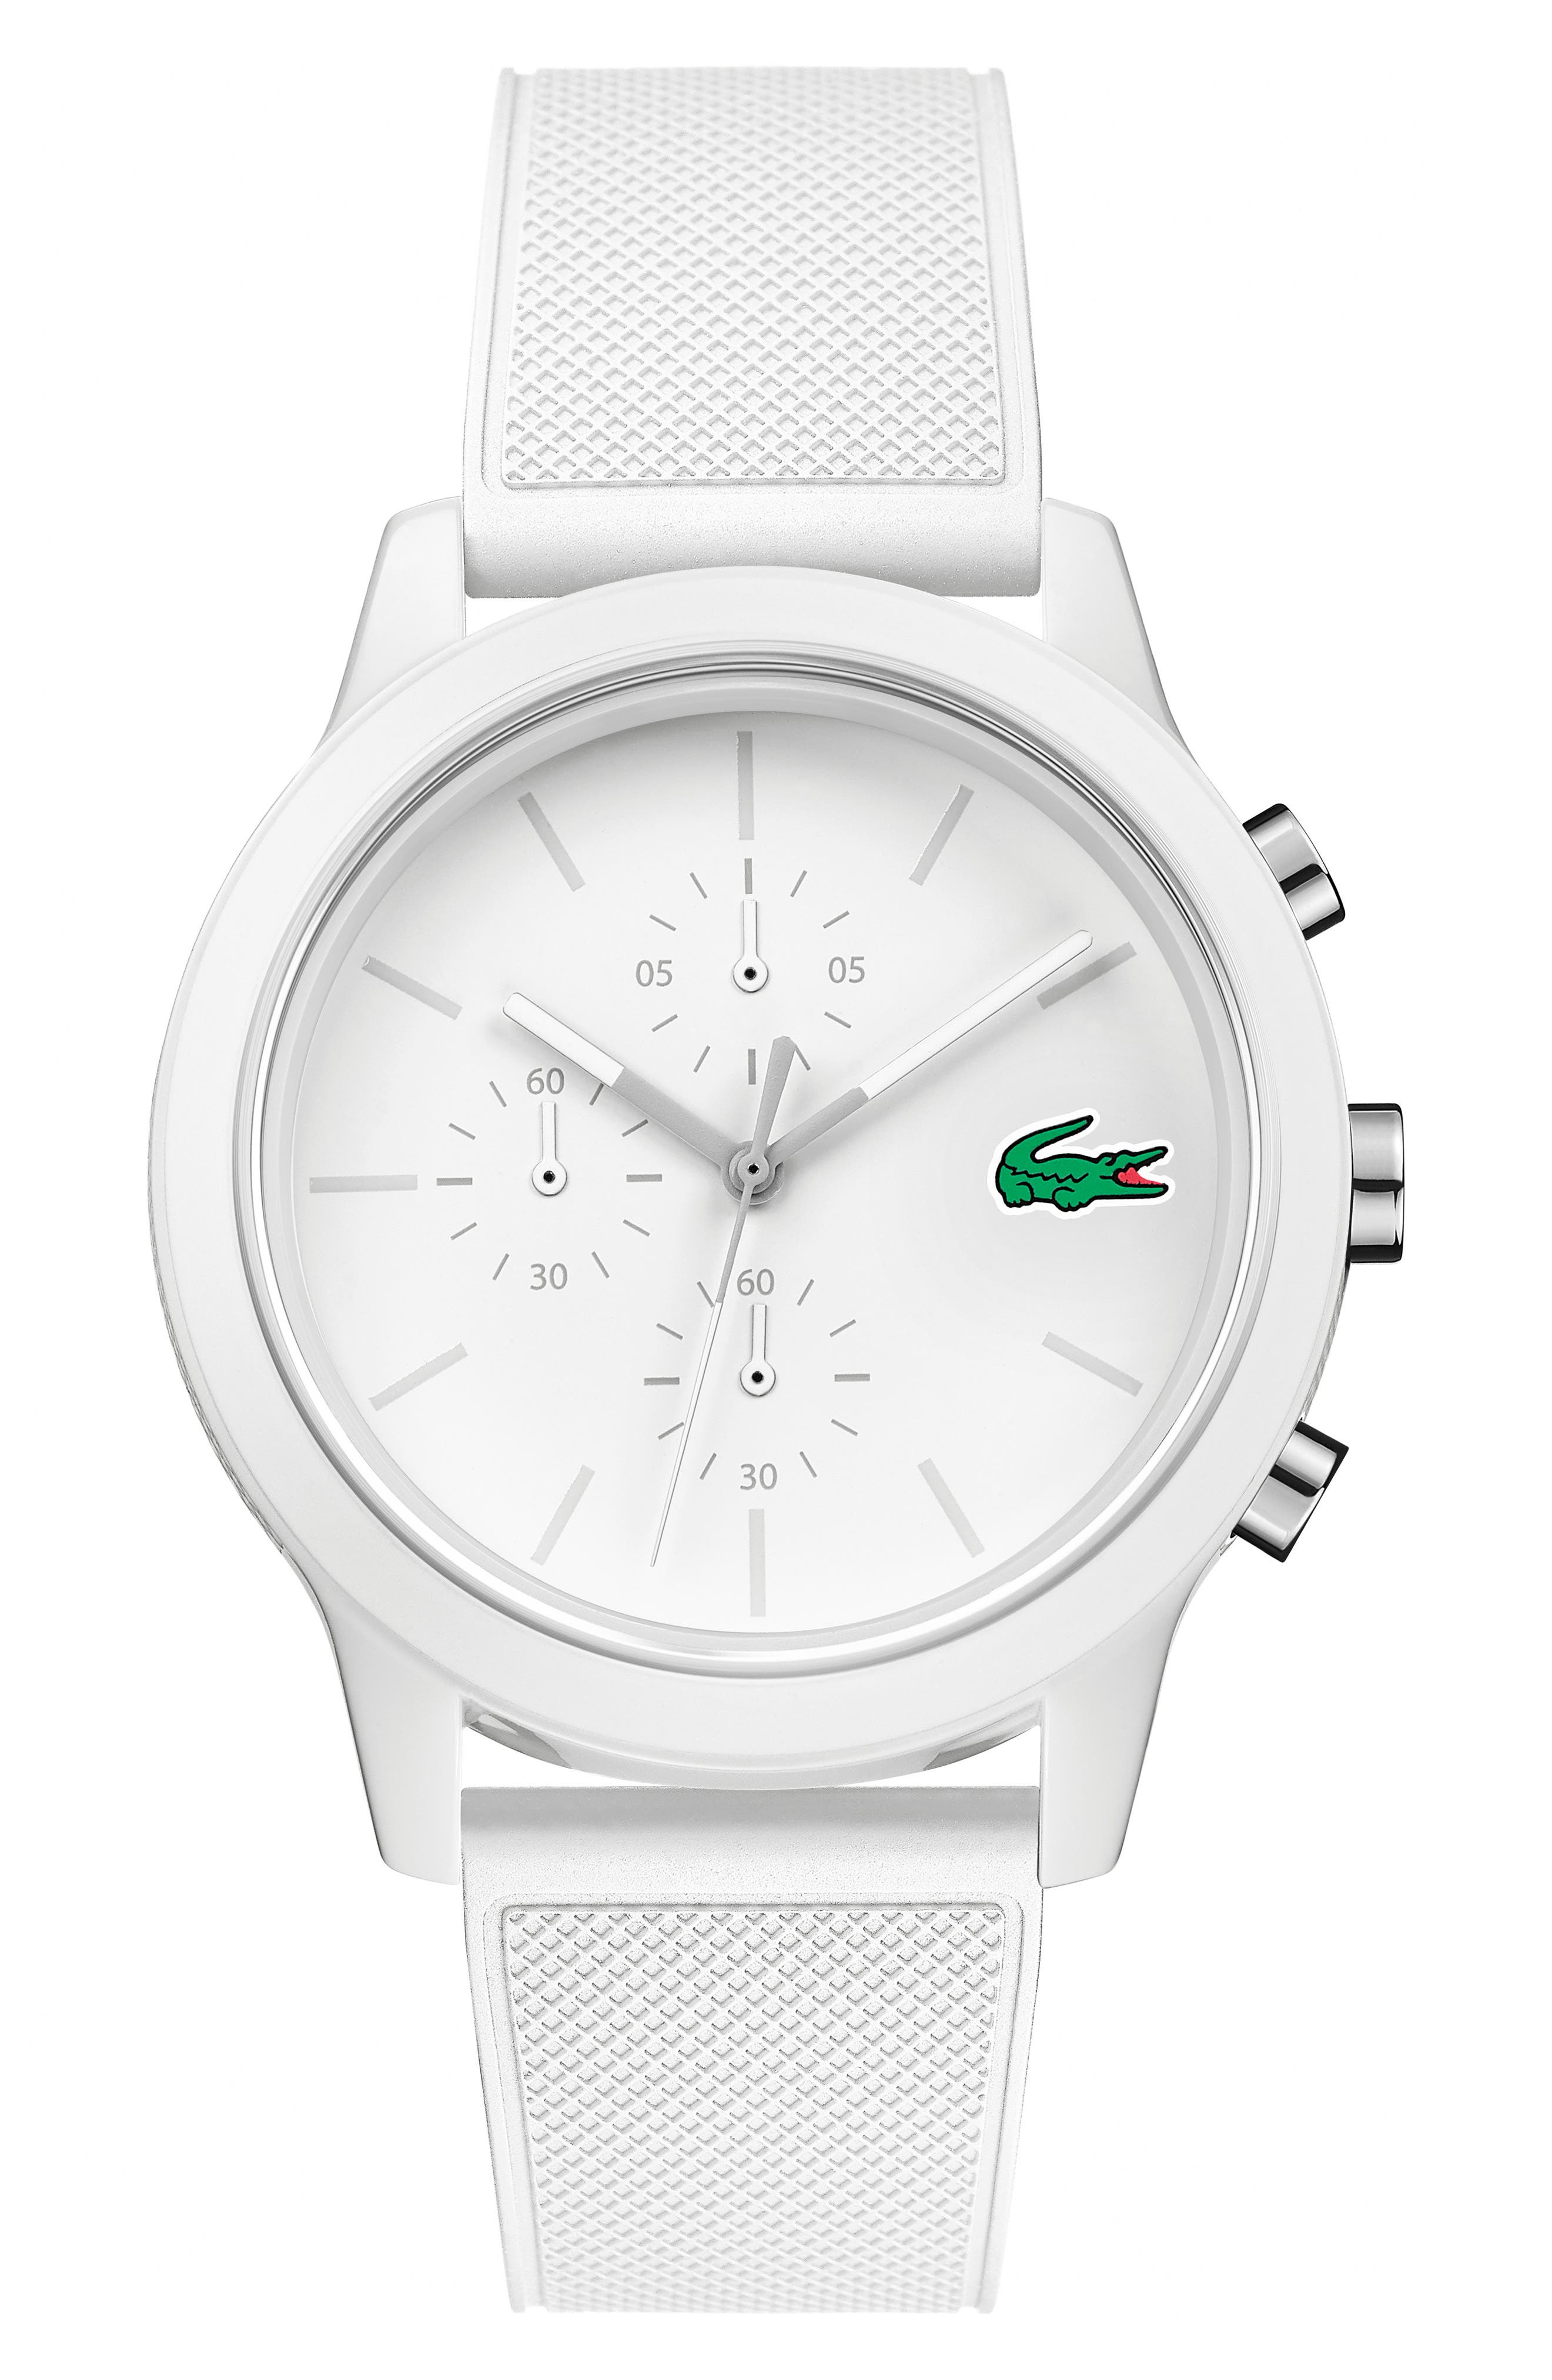 LACOSTE 12.12 Chronograph Silicone Band Watch, 44mm, Main, color, WHITE